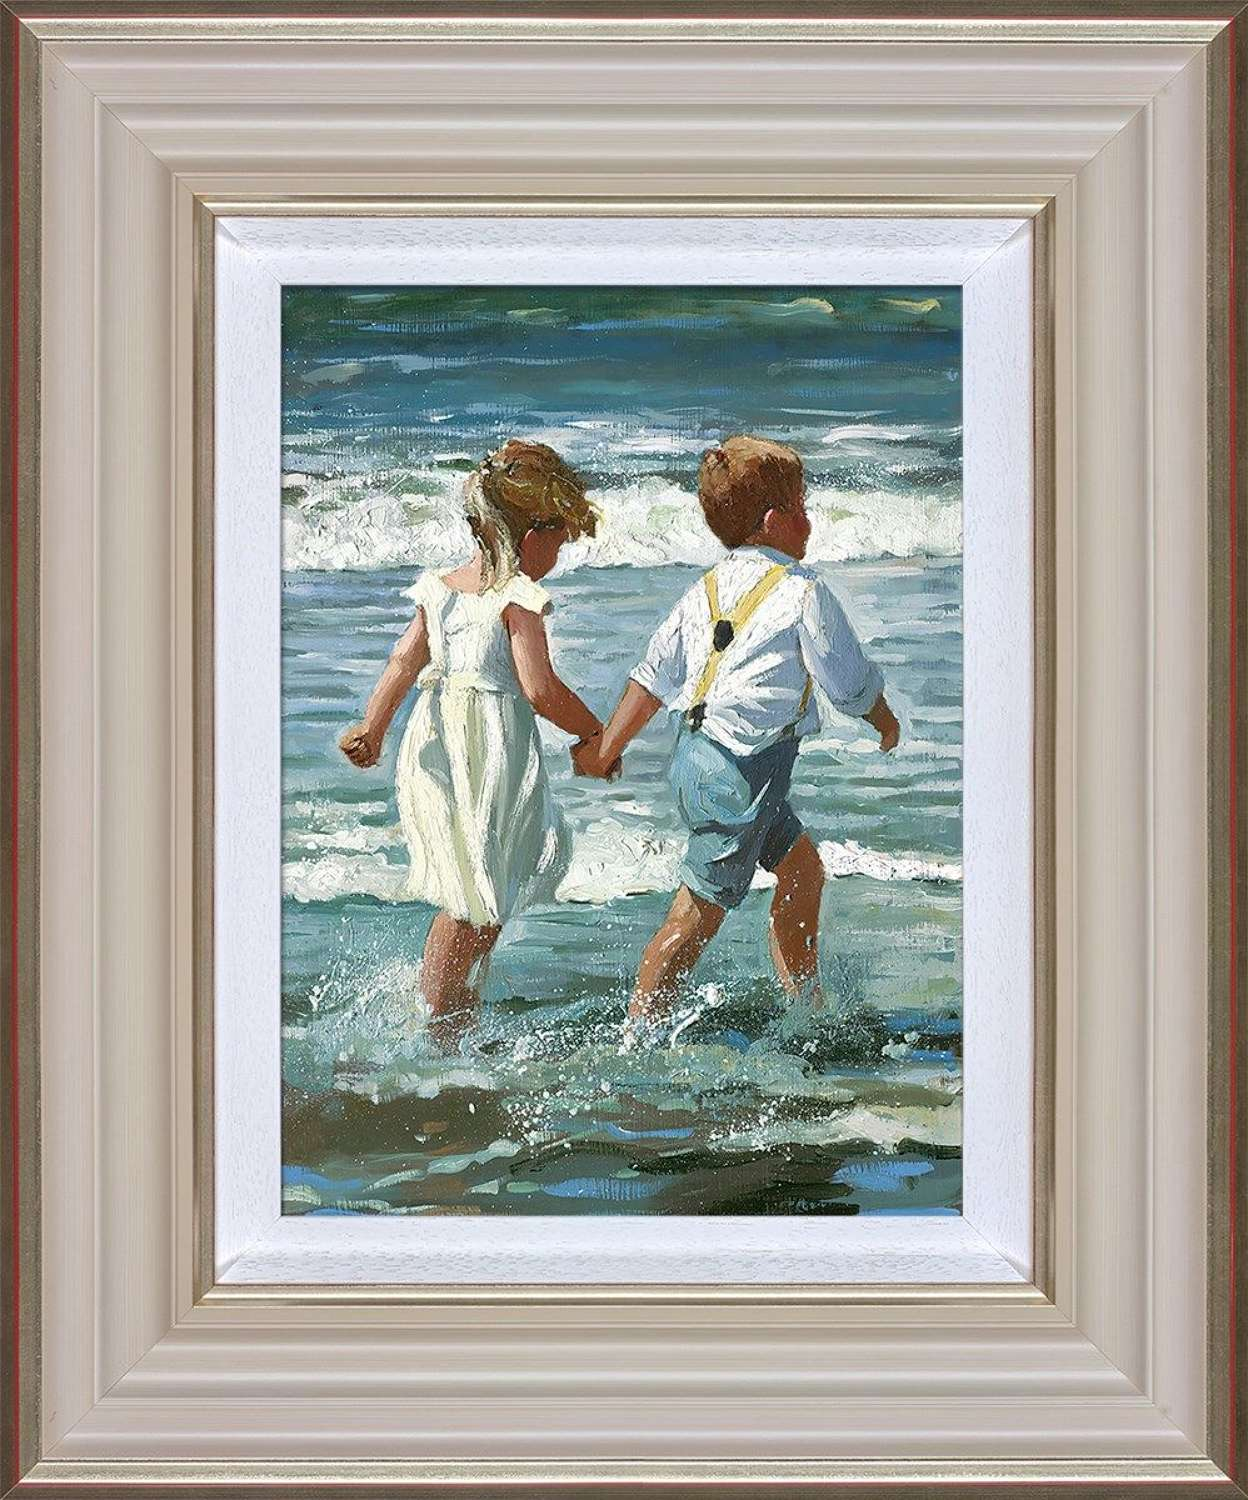 Chasing the Waves Framed Art Print by Sherree Valentine Daines